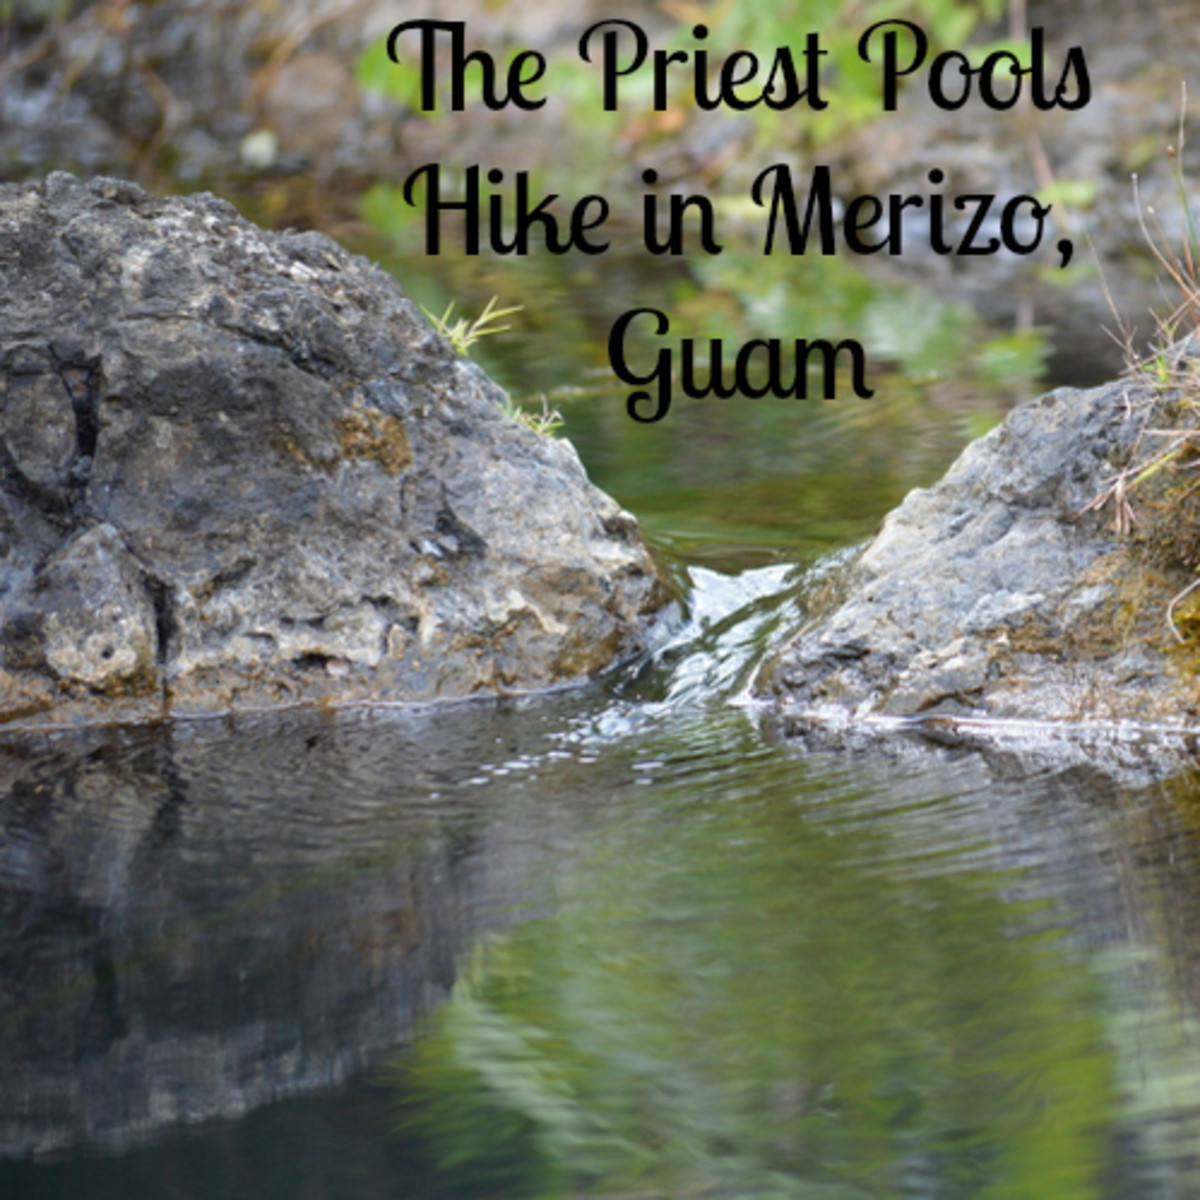 Merizo Priest Pools hike